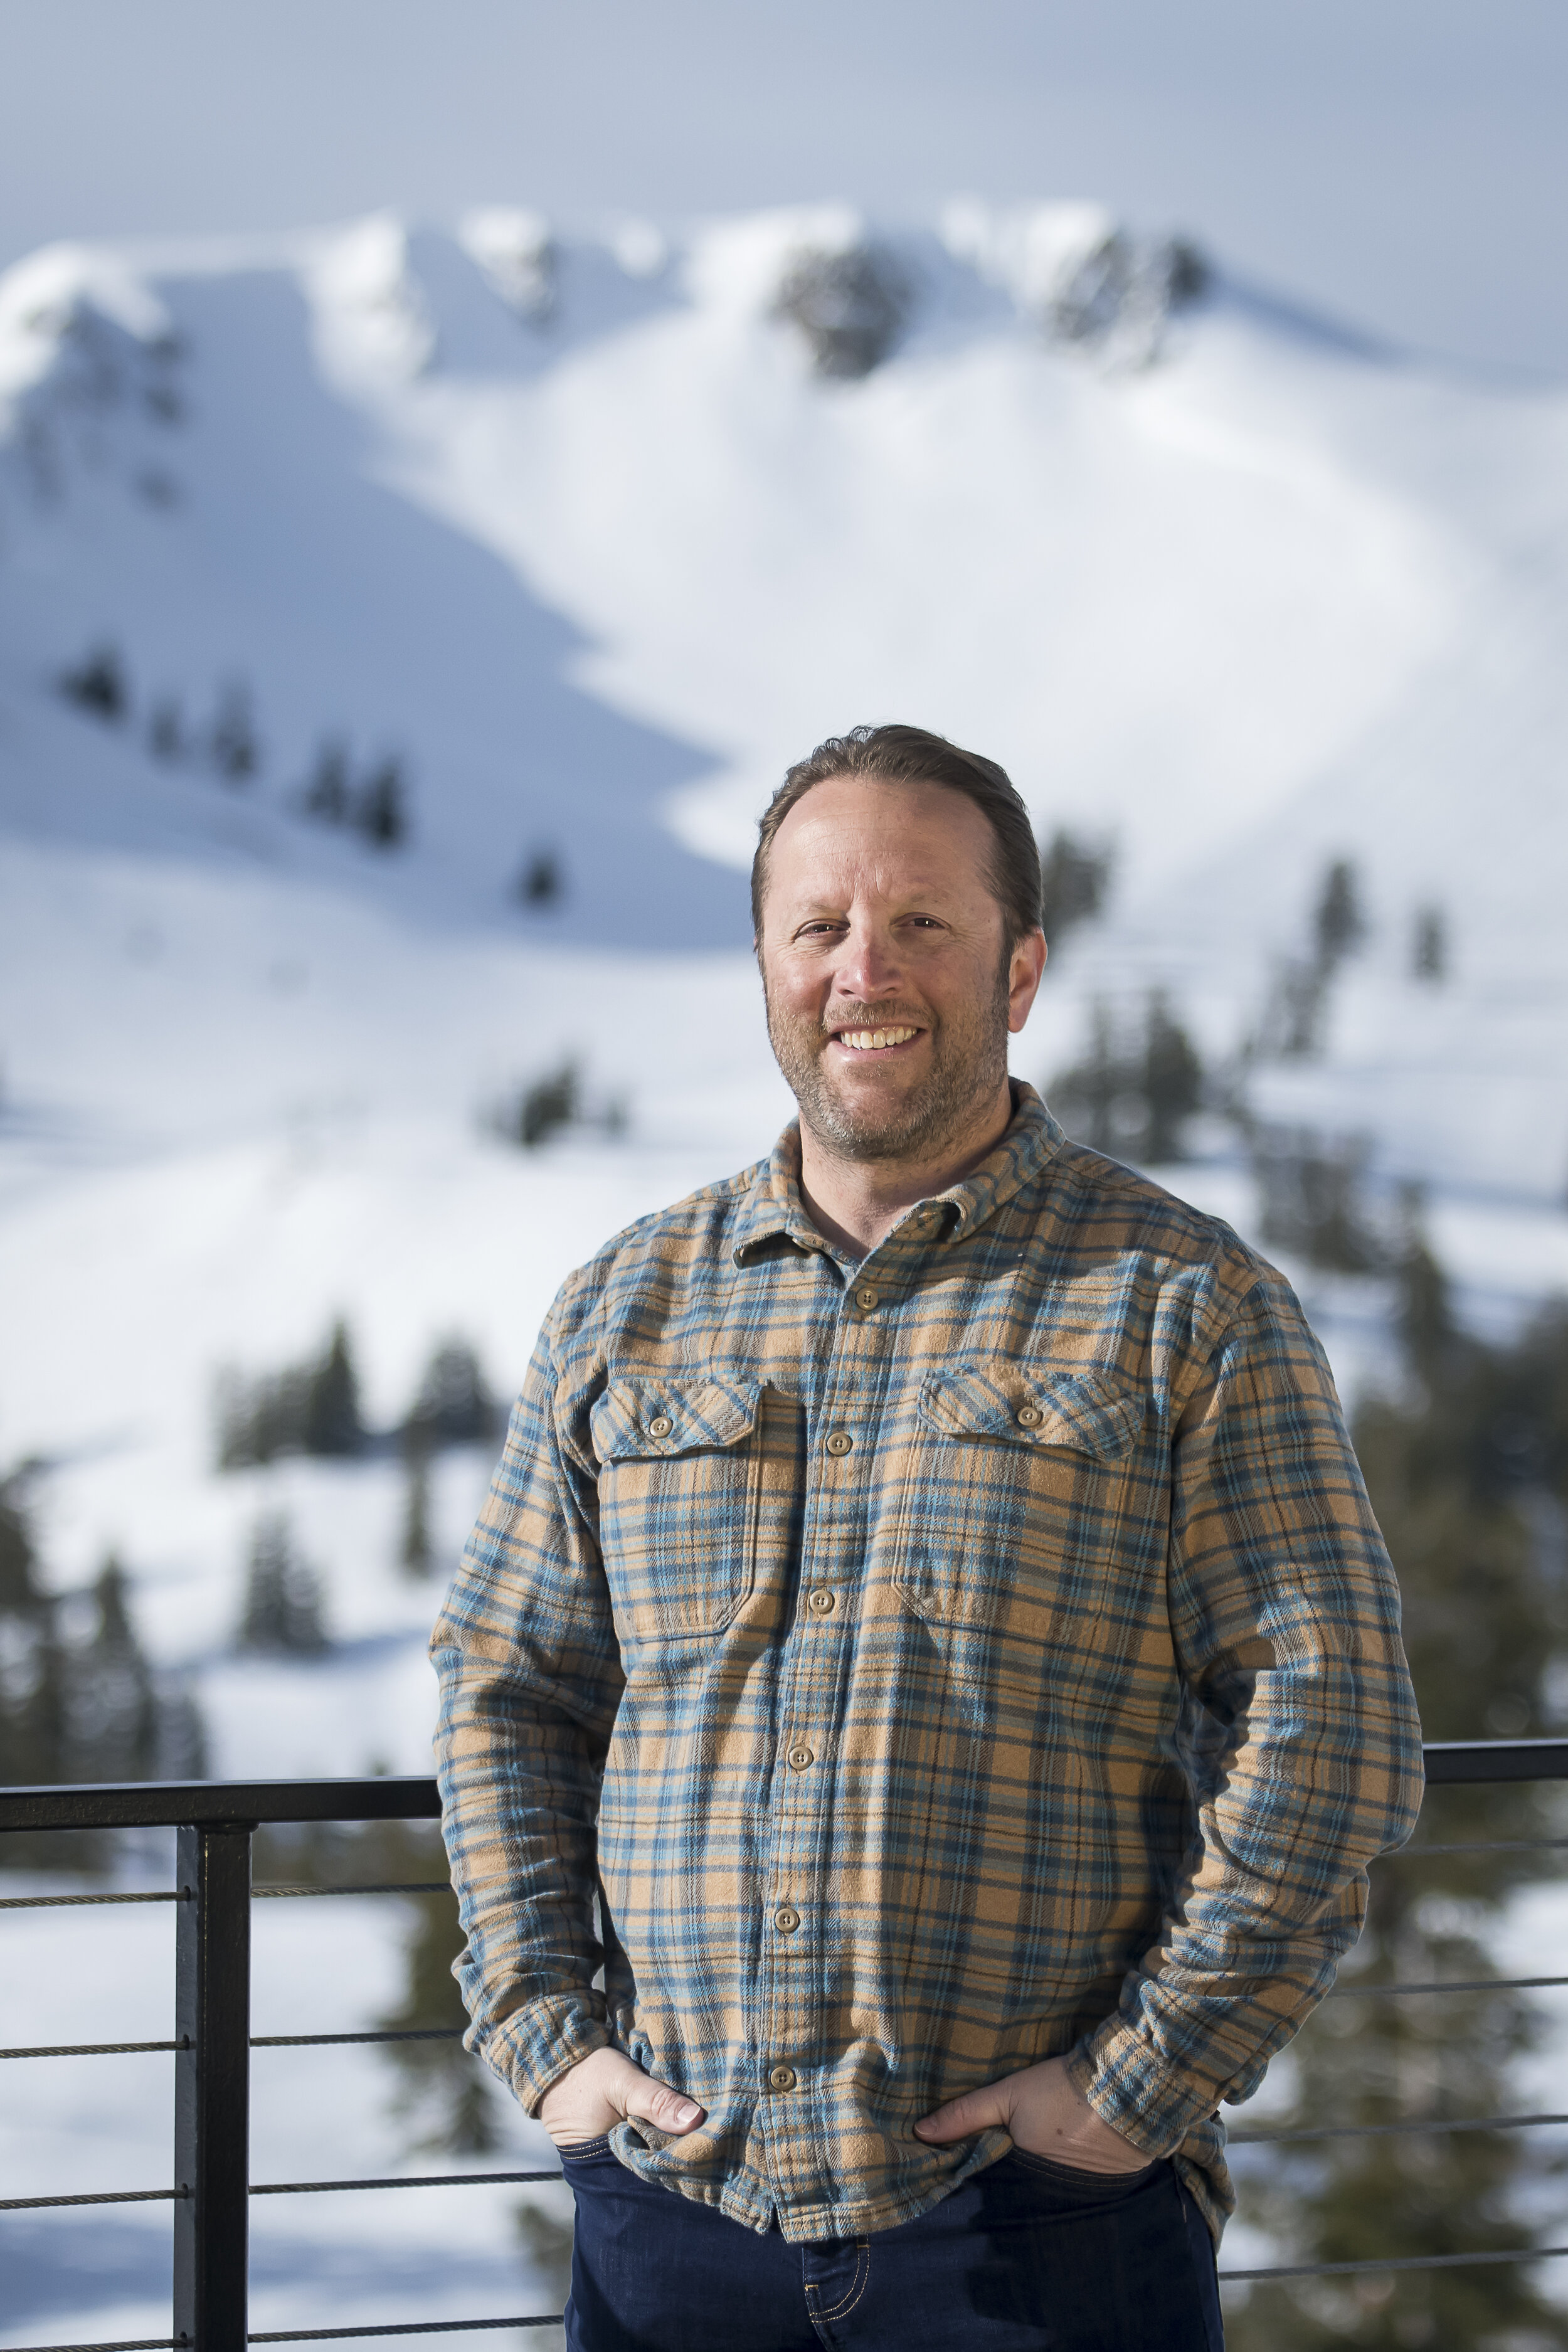 Ron cohen , president and coo, squaw valley alpine meadows